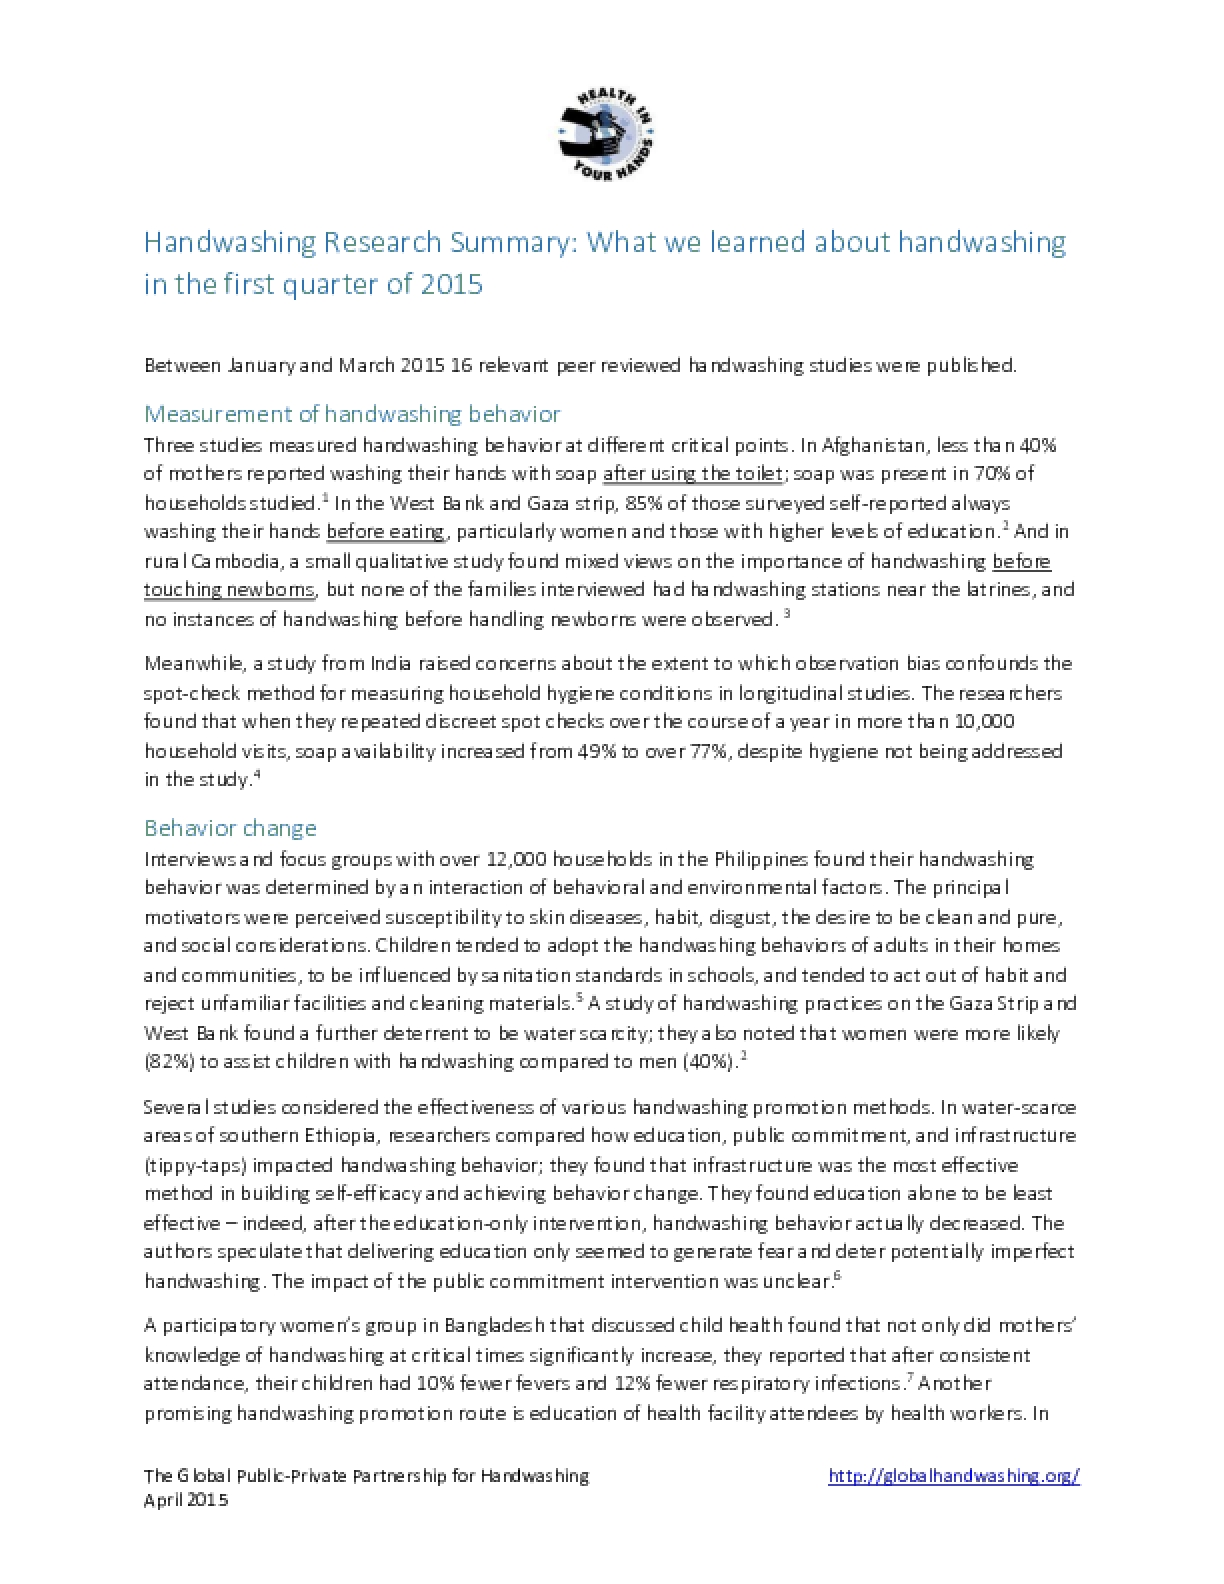 Handwashing Research Summary – Quarter 1, 2015